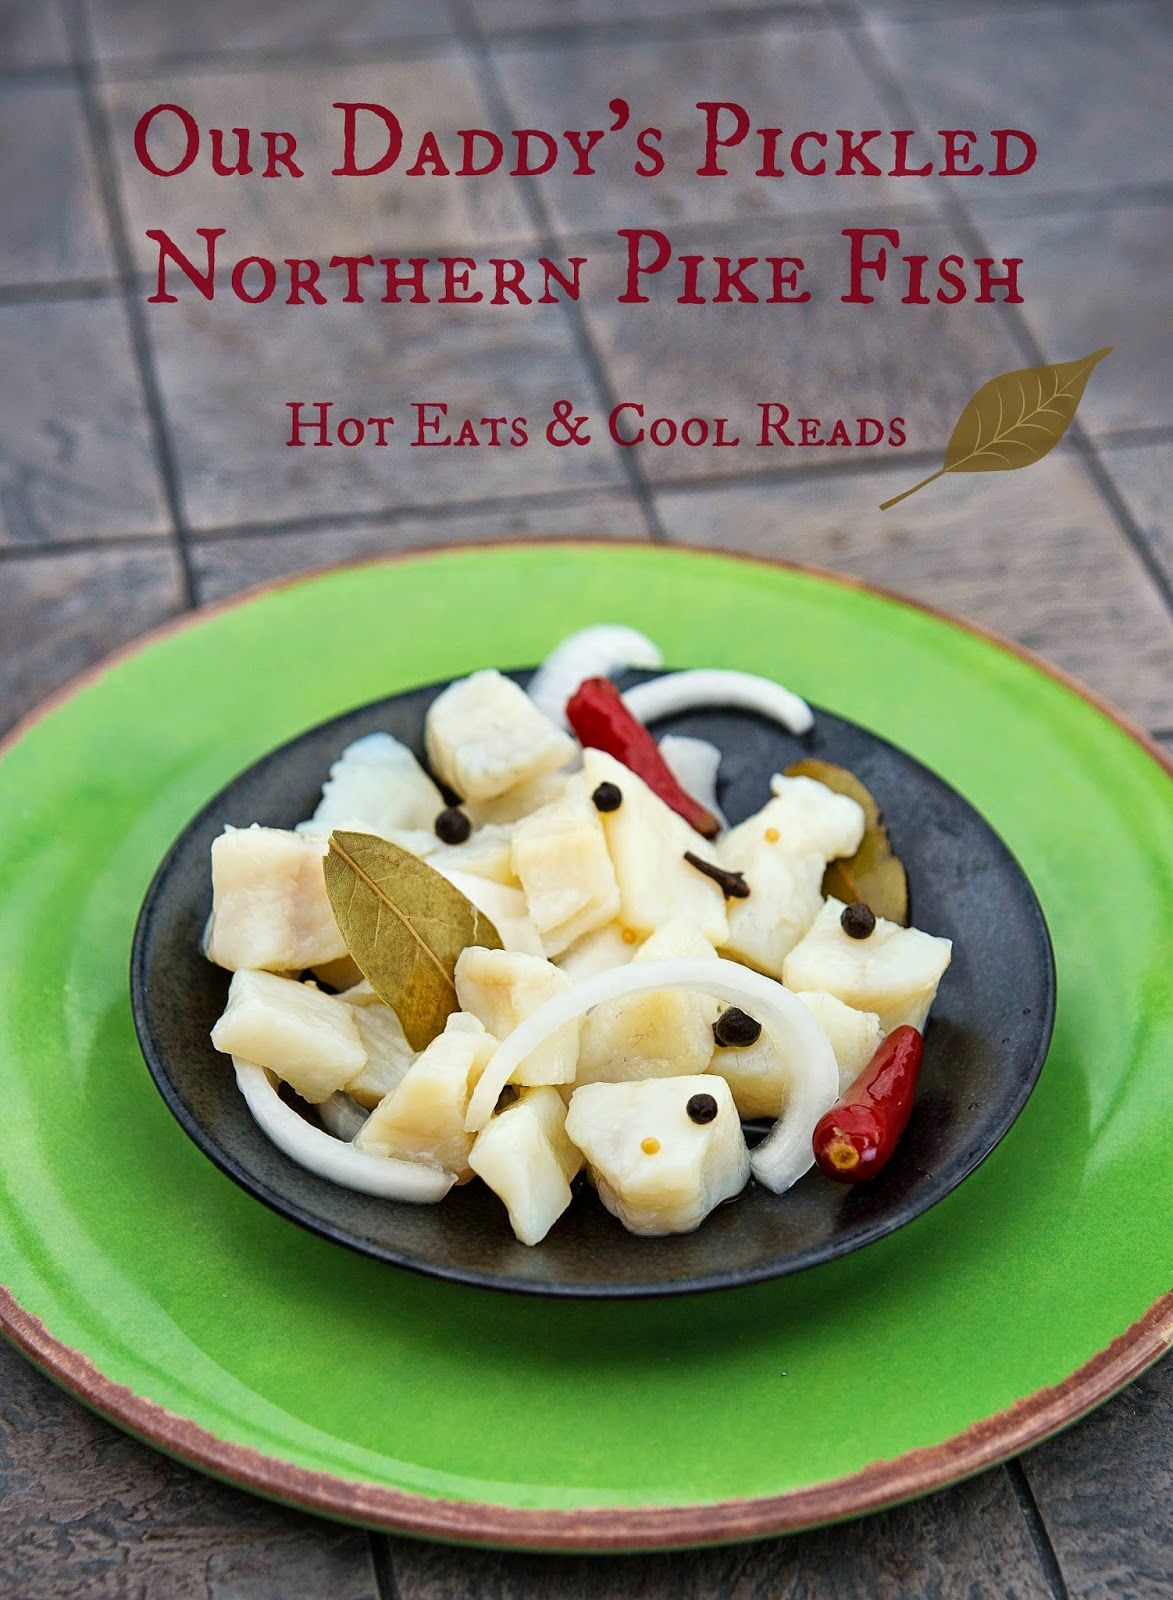 Details on how to cook pike in sour cream